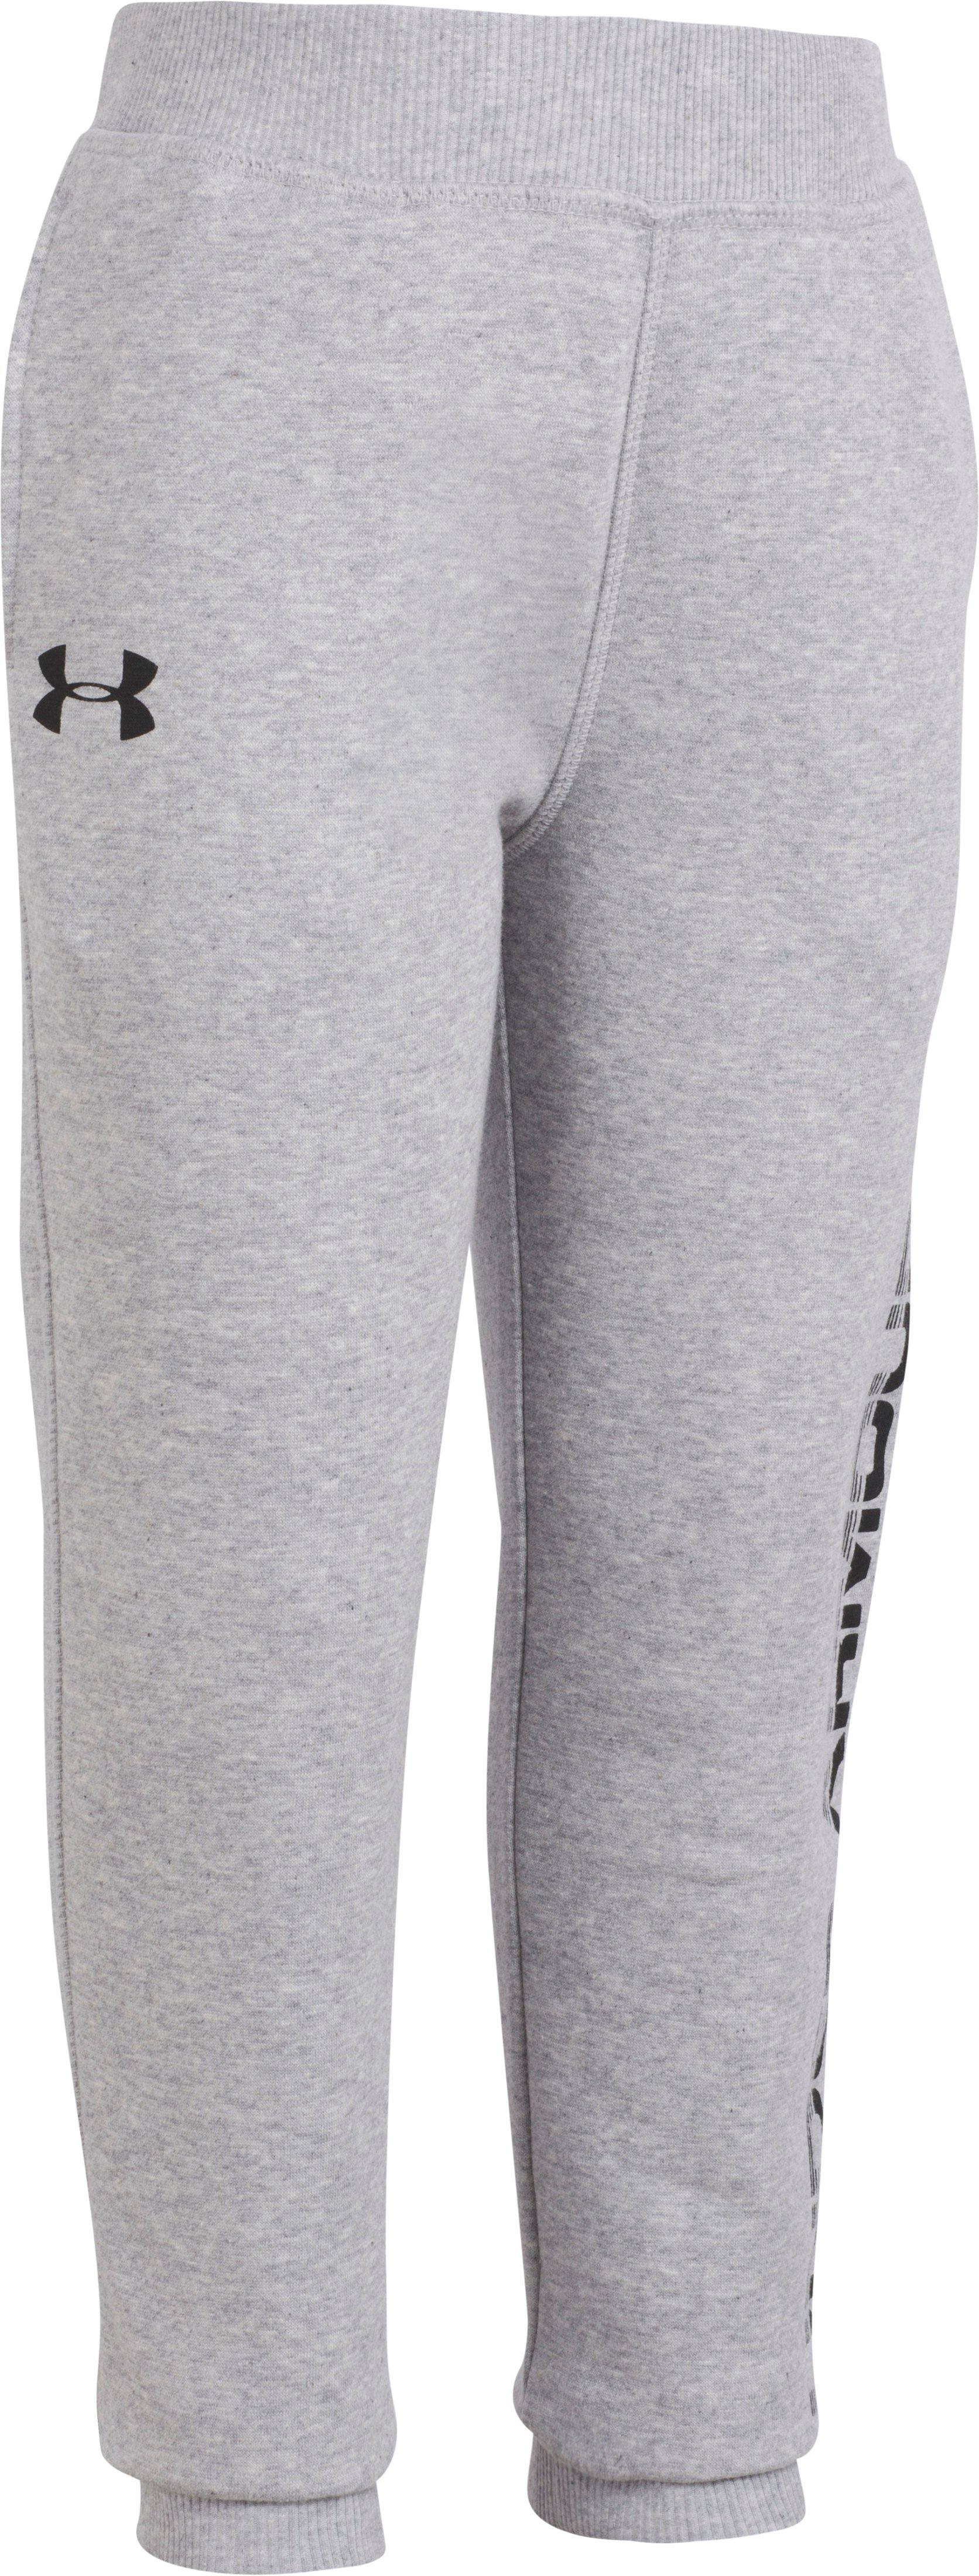 Boys' Pre-School UA Threadborne Joggers, True Gray Heather, zoomed